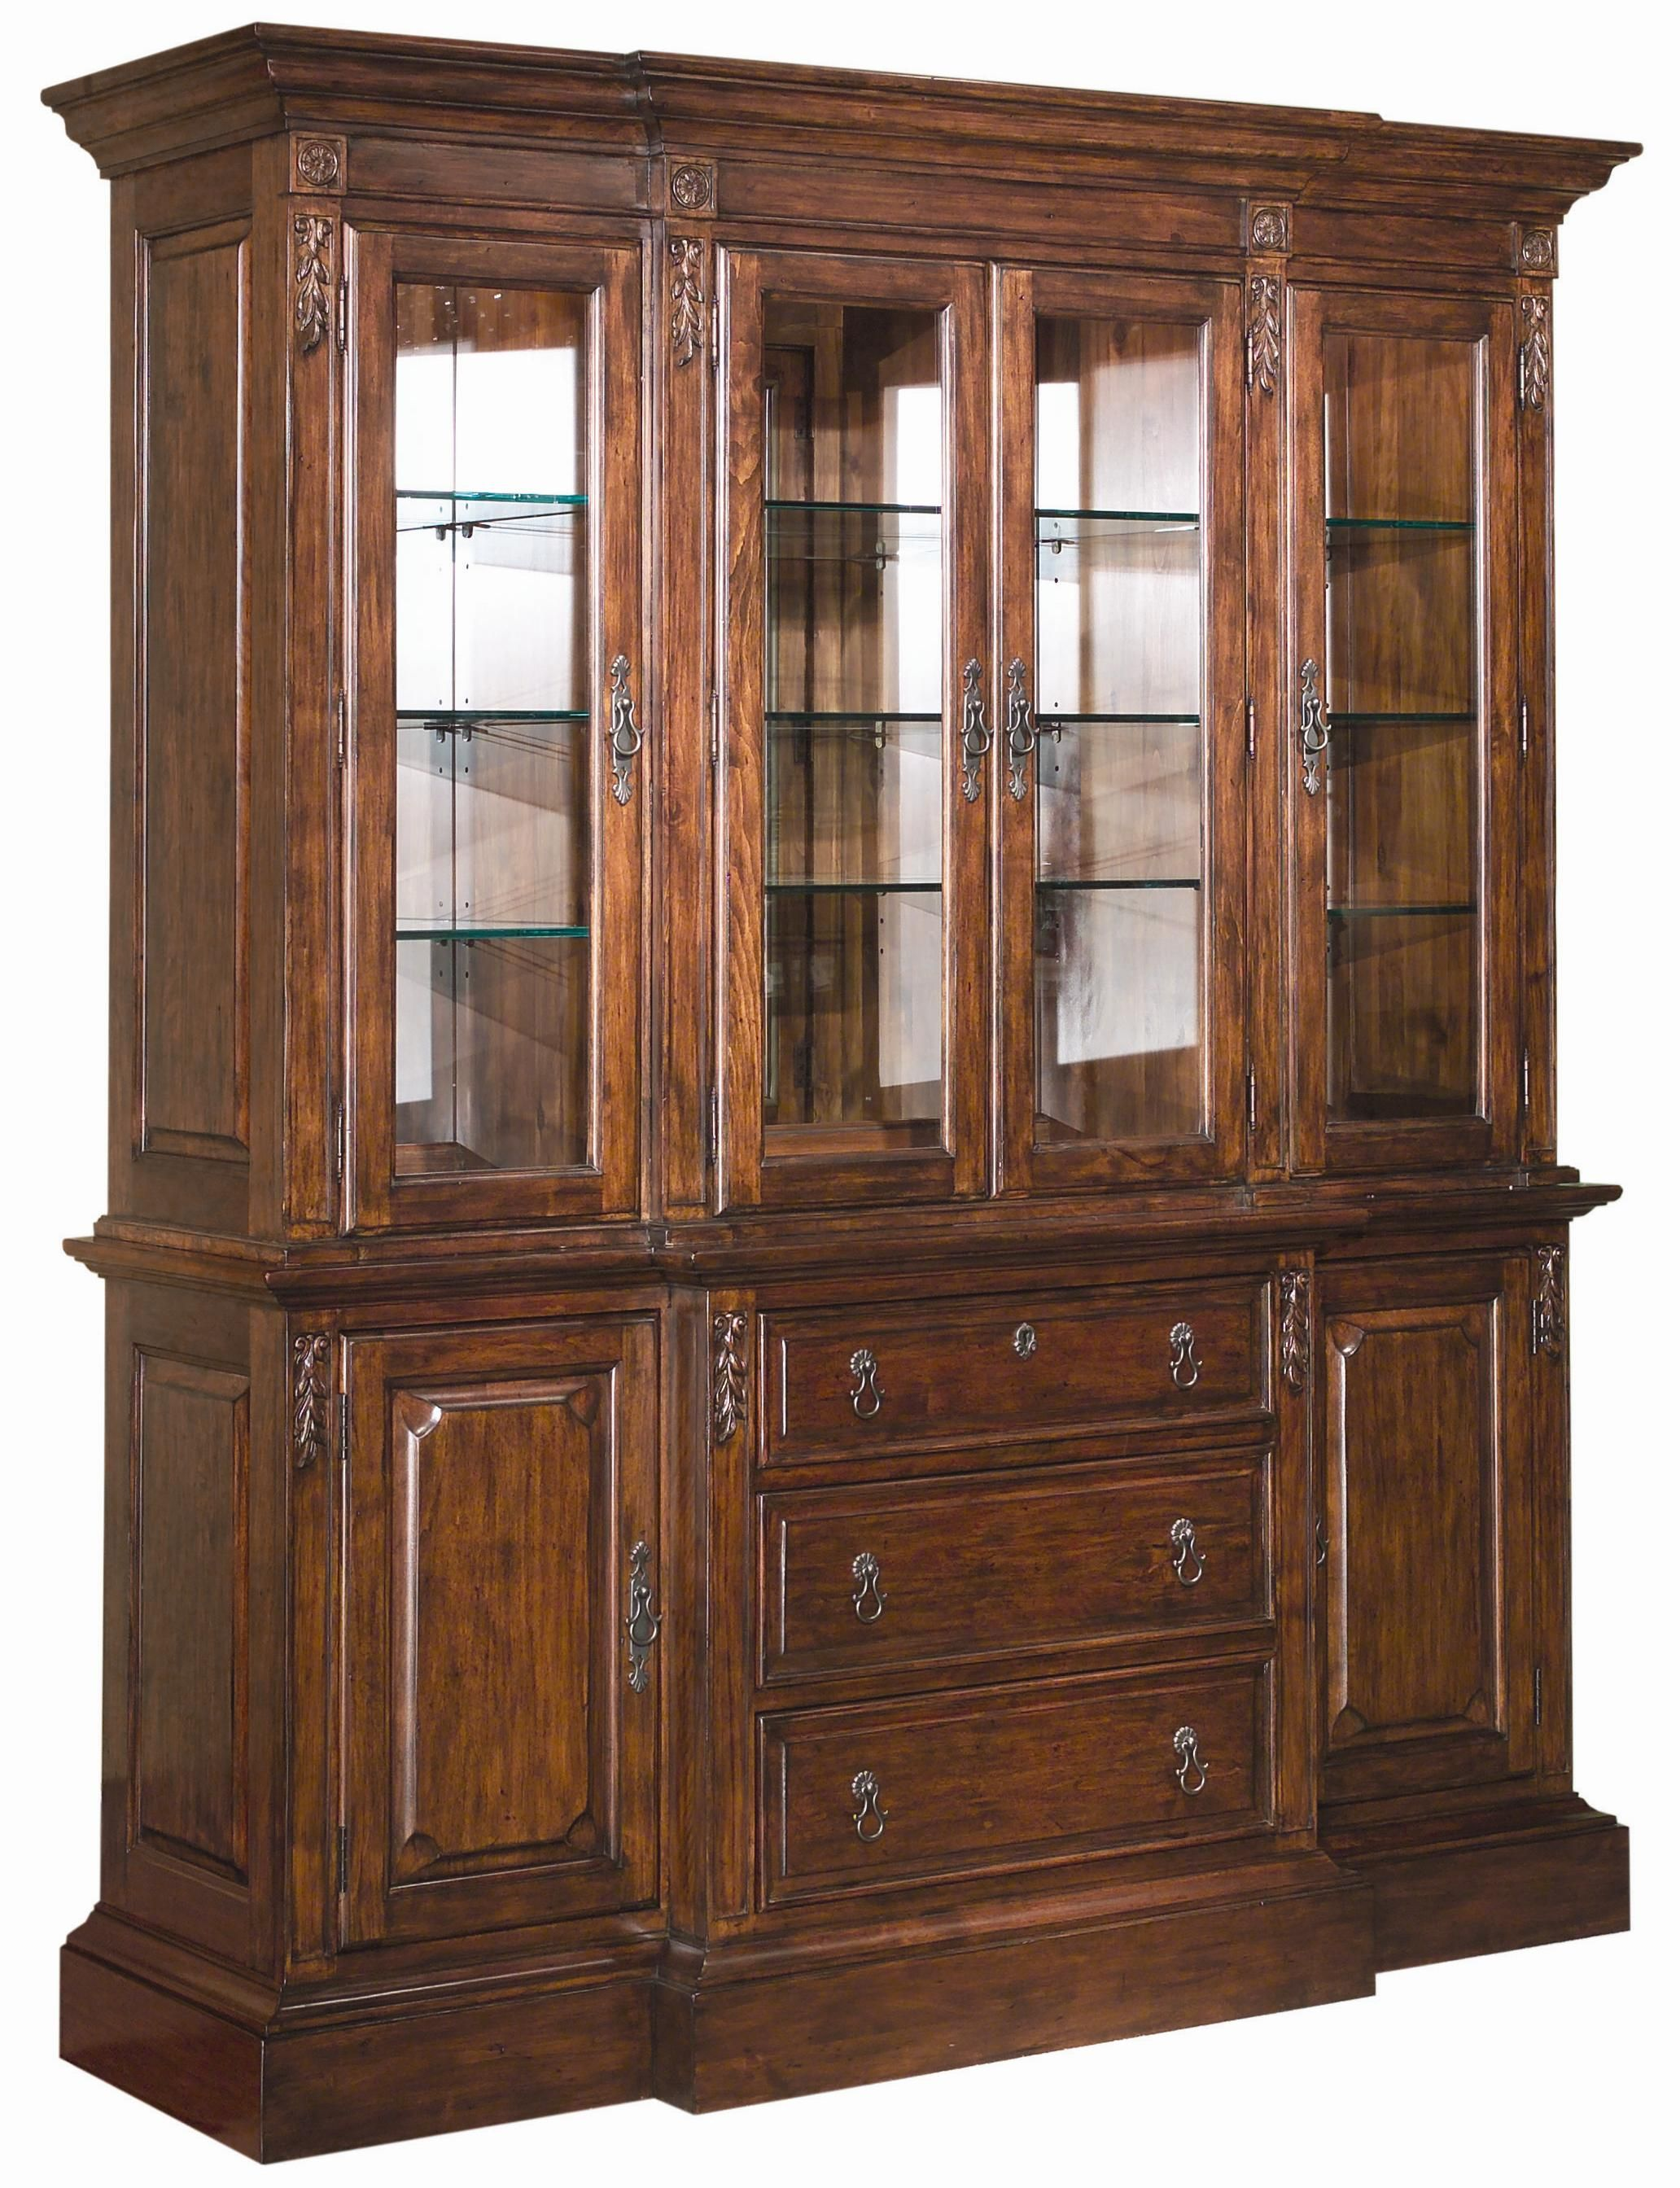 Kincaid Bedroom Suite Sturlyn China Cabinet By Kincaid Furniture China Cabinet